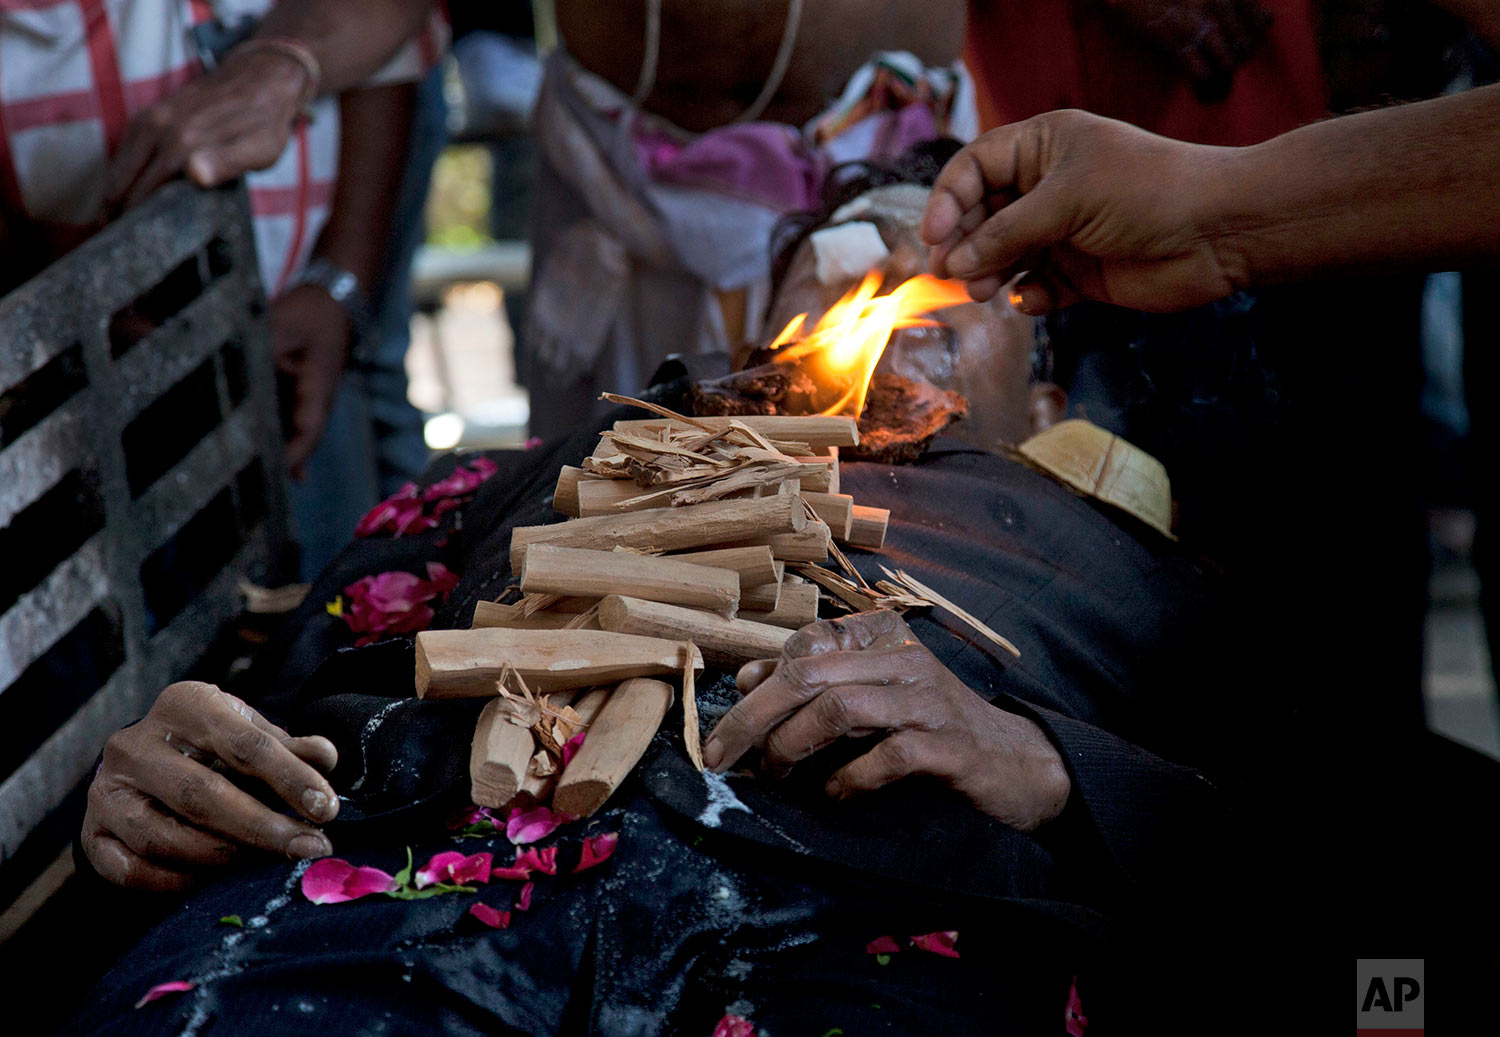 """A family member performs rituals over the body of Srinivas Kuchibhotla, a 32-year-old engineer who was killed in an apparently racially motivated shooting in a crowded Kansas bar, at a crematorium in Hyderabad, India, Tuesday, Feb.28, 2017. According to witnesses, the gunman yelled """"get out of my country"""" at Kuchibhotla and Alok Madasani before he opened fire at Austin's Bar and Grill in Olathe, Kansas, a suburb of Kansas City, on Wednesday evening. Both men had come to the U.S. from India to study and worked as engineers at GPS-maker Garmin. (AP Photo/Mahesh Kumar A.)"""